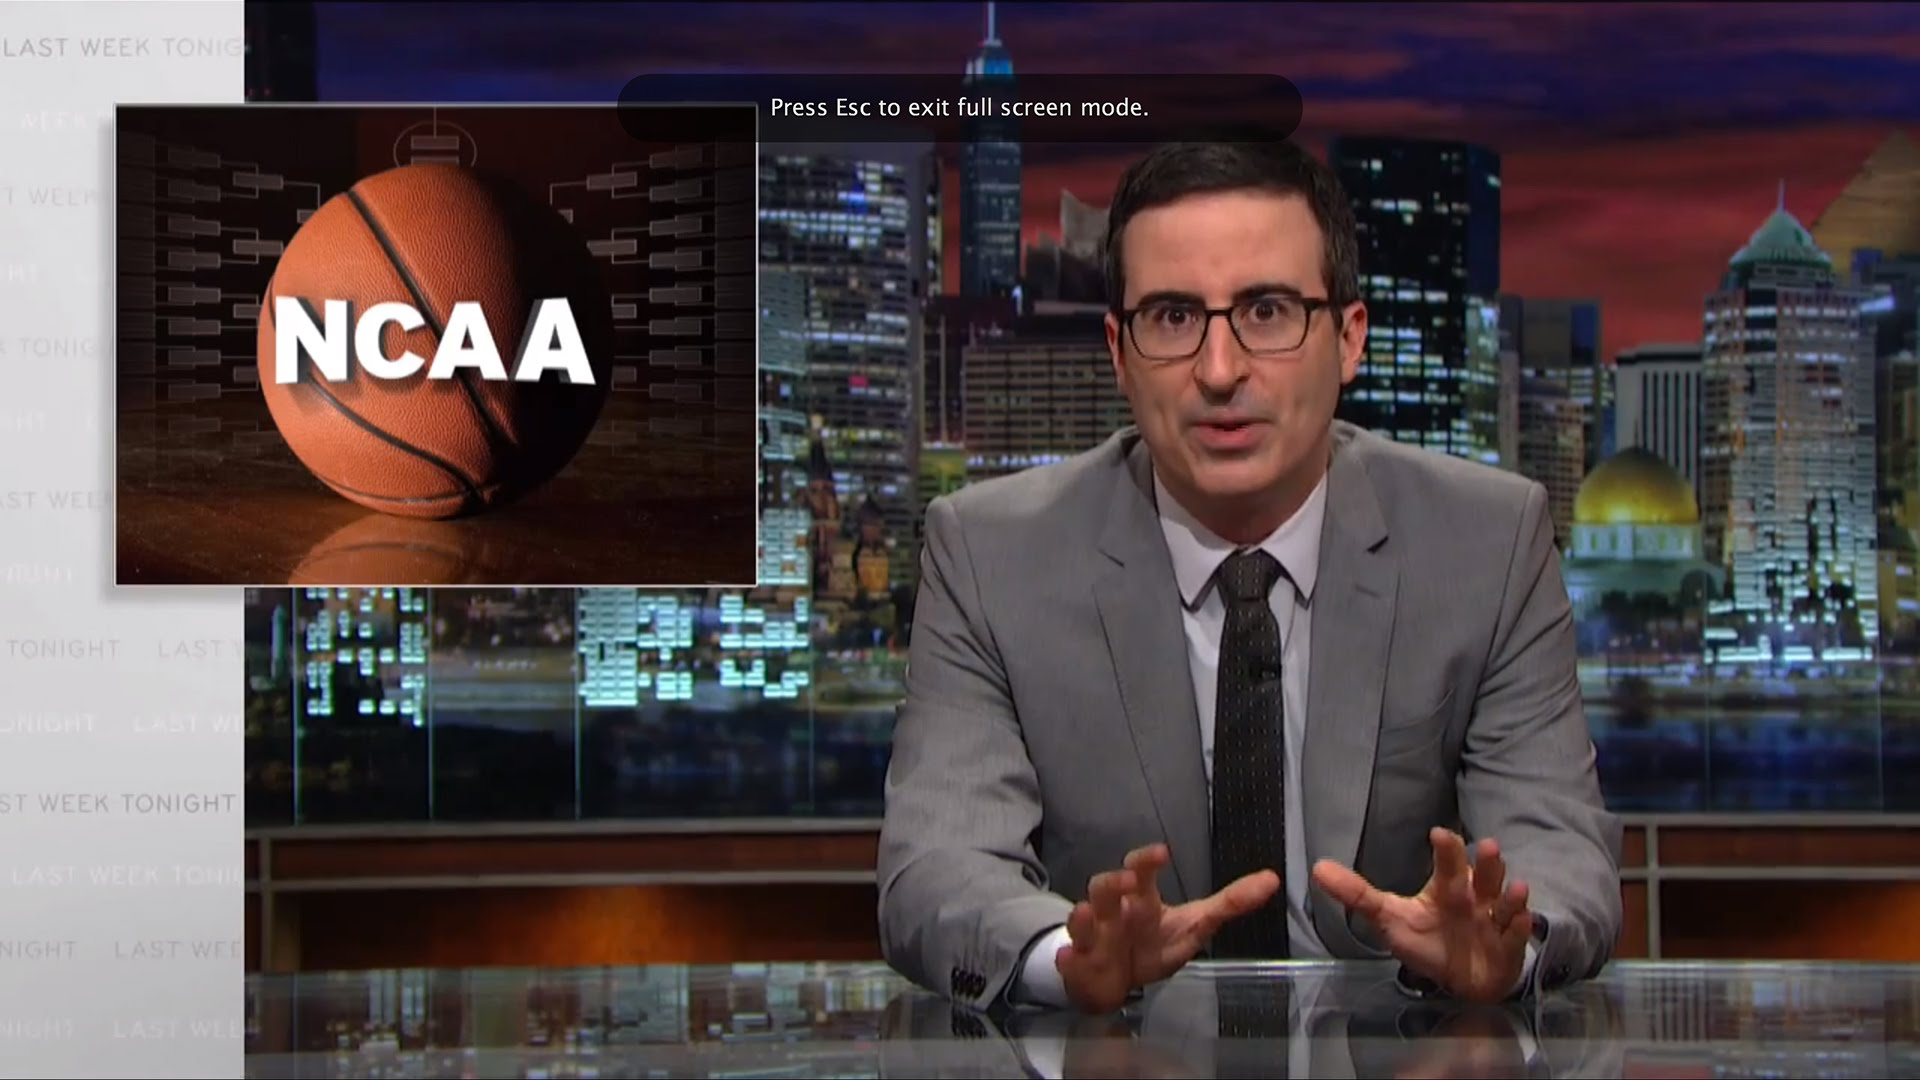 John Oliver rips NCAA for not paying athletes